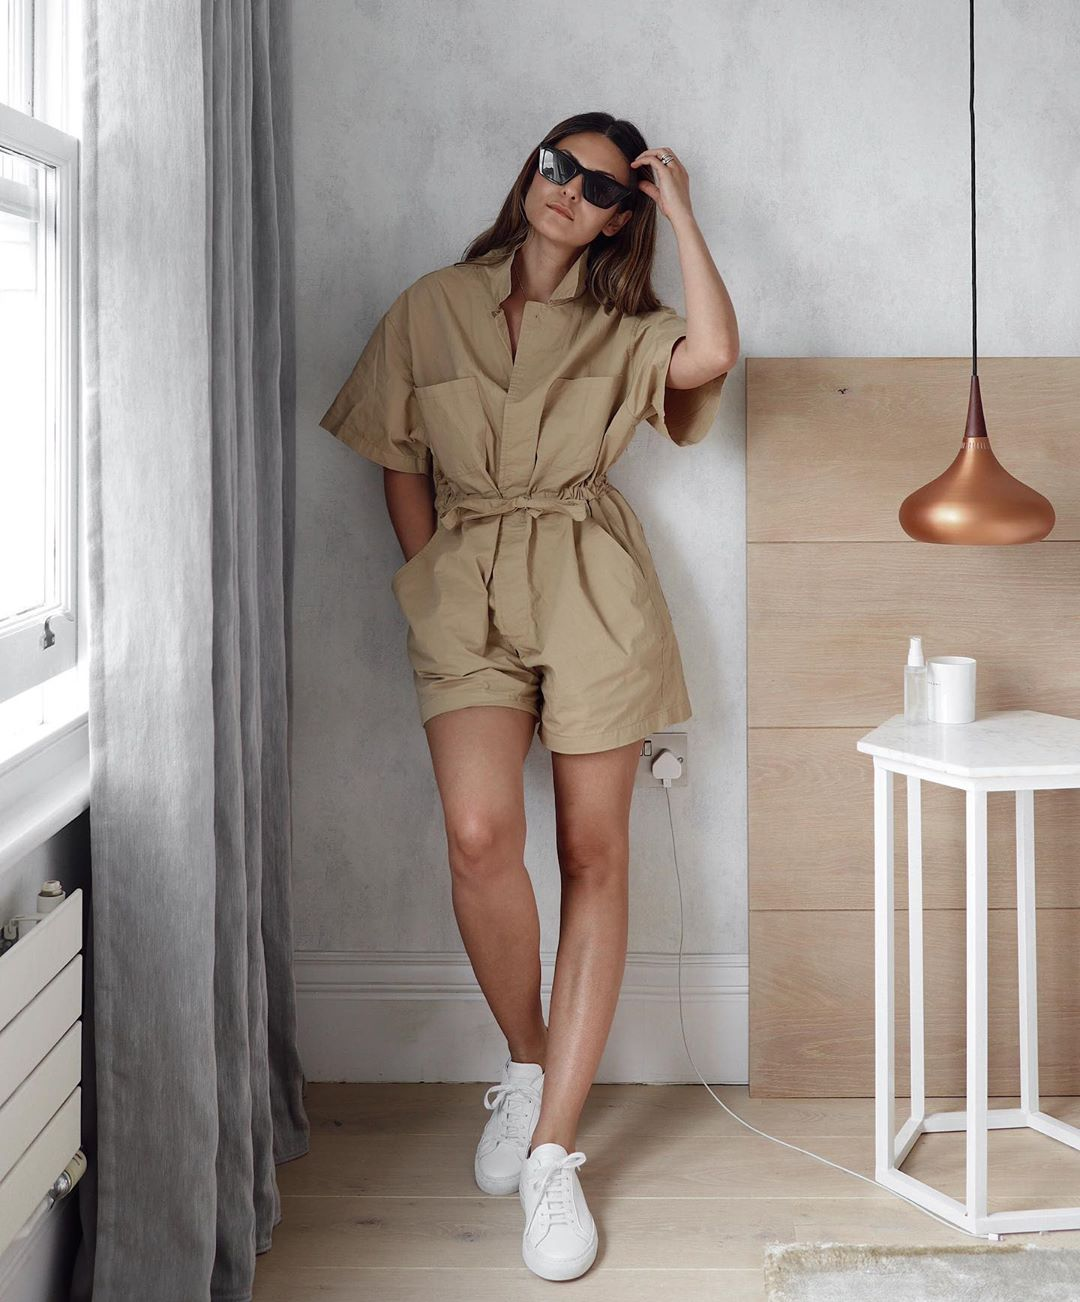 Summer Romper Season is Officially Here